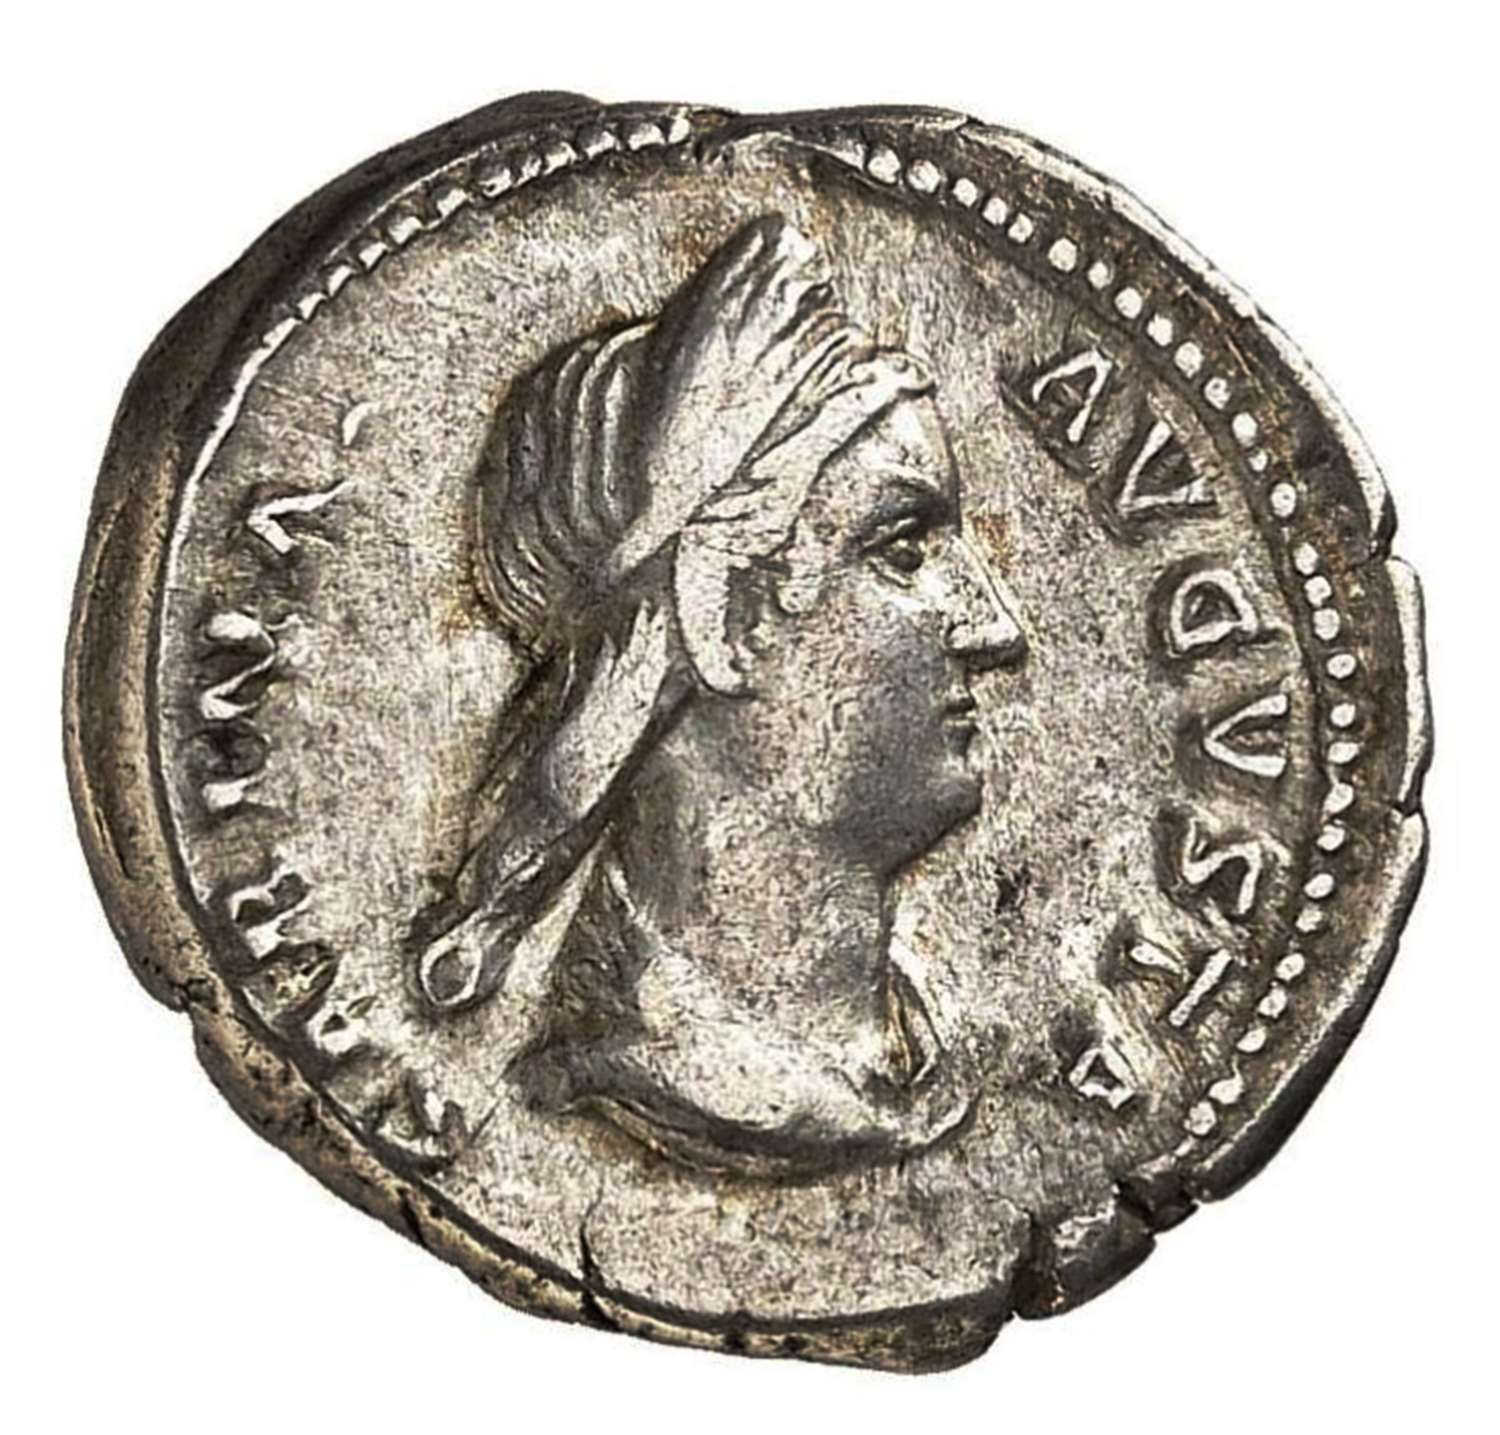 Ancient Roman silver denarius of empress Sabina